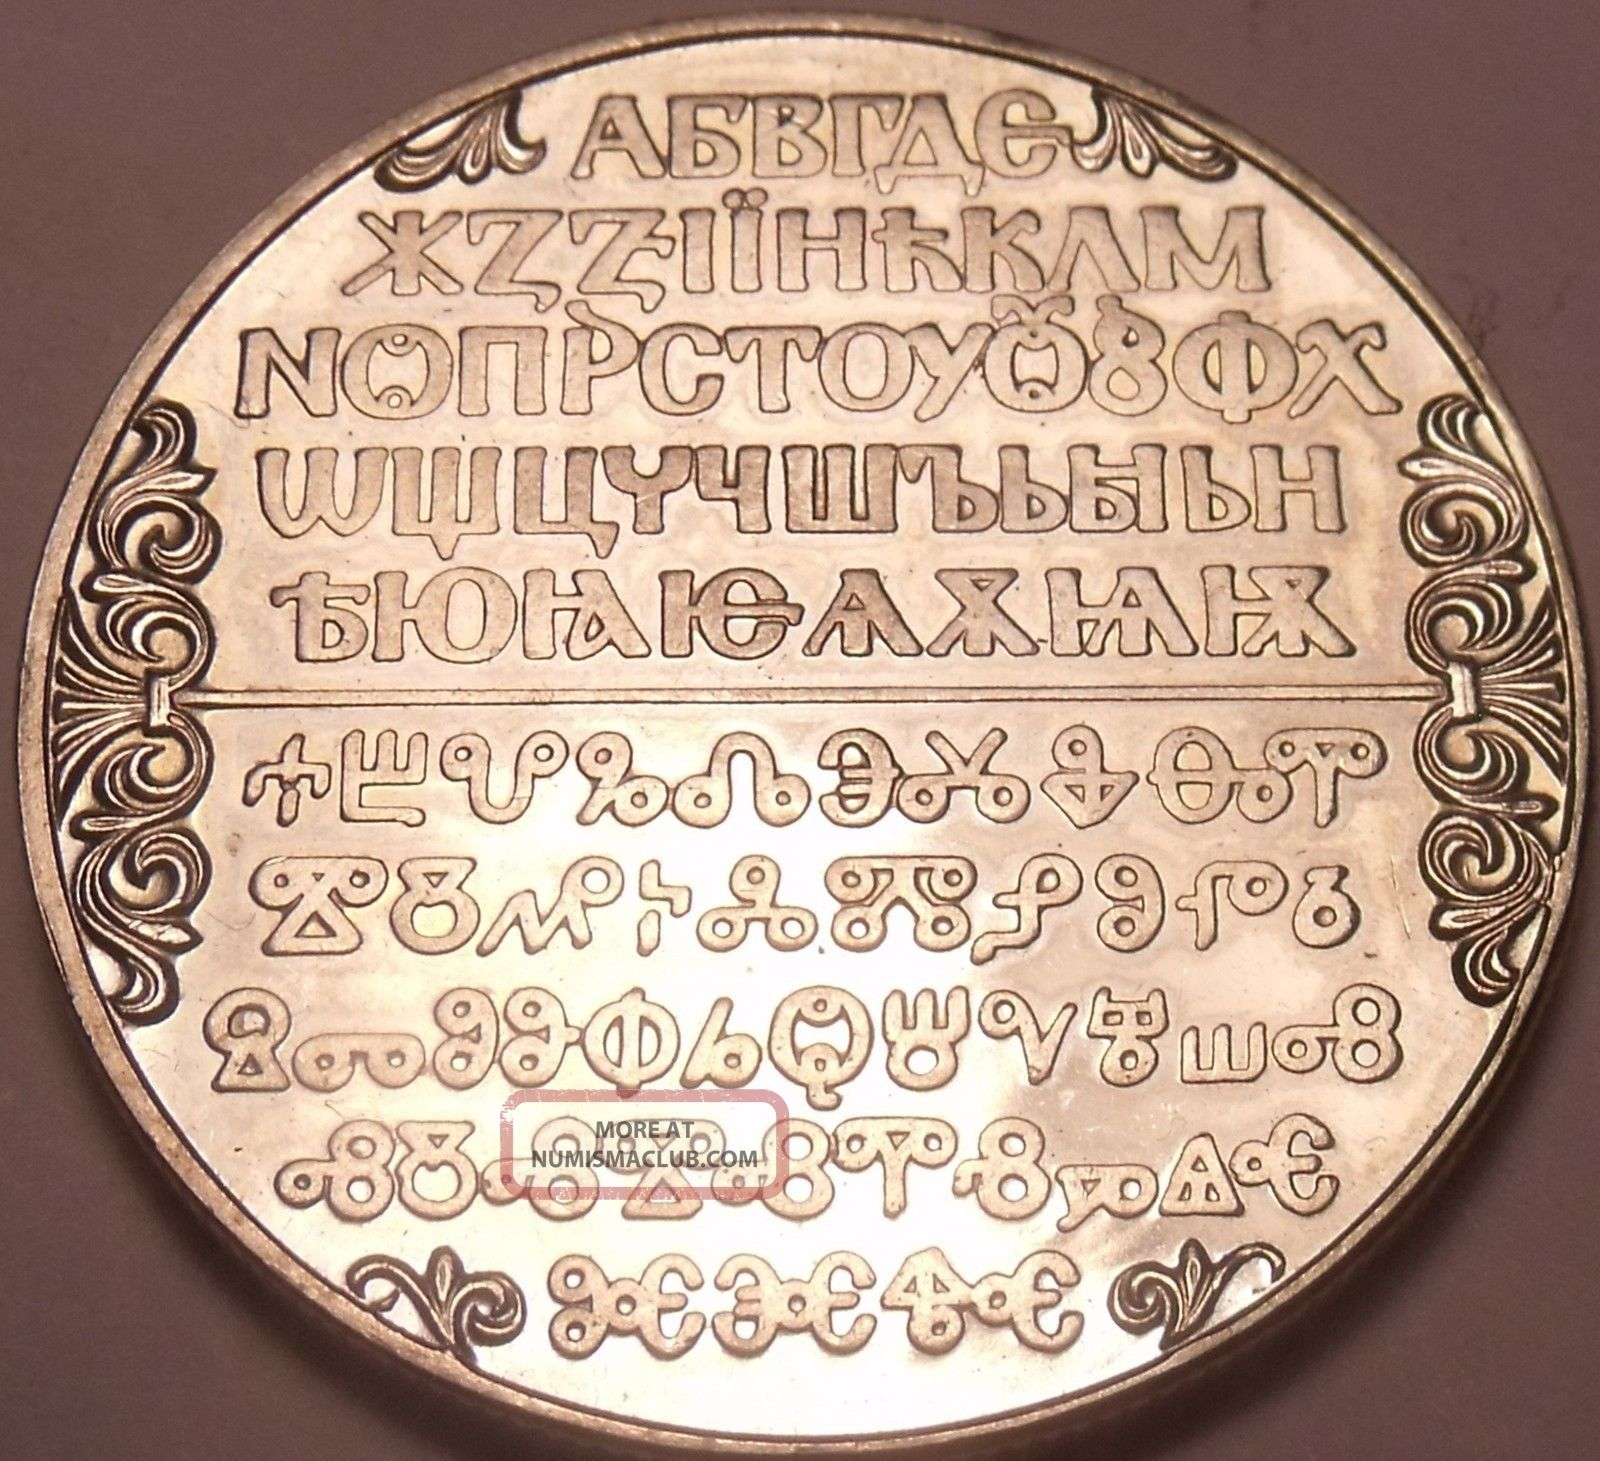 Large Proof Bulgaria 1981 2 Leva Cyrillic Alphabet Fantastic Coins: World photo